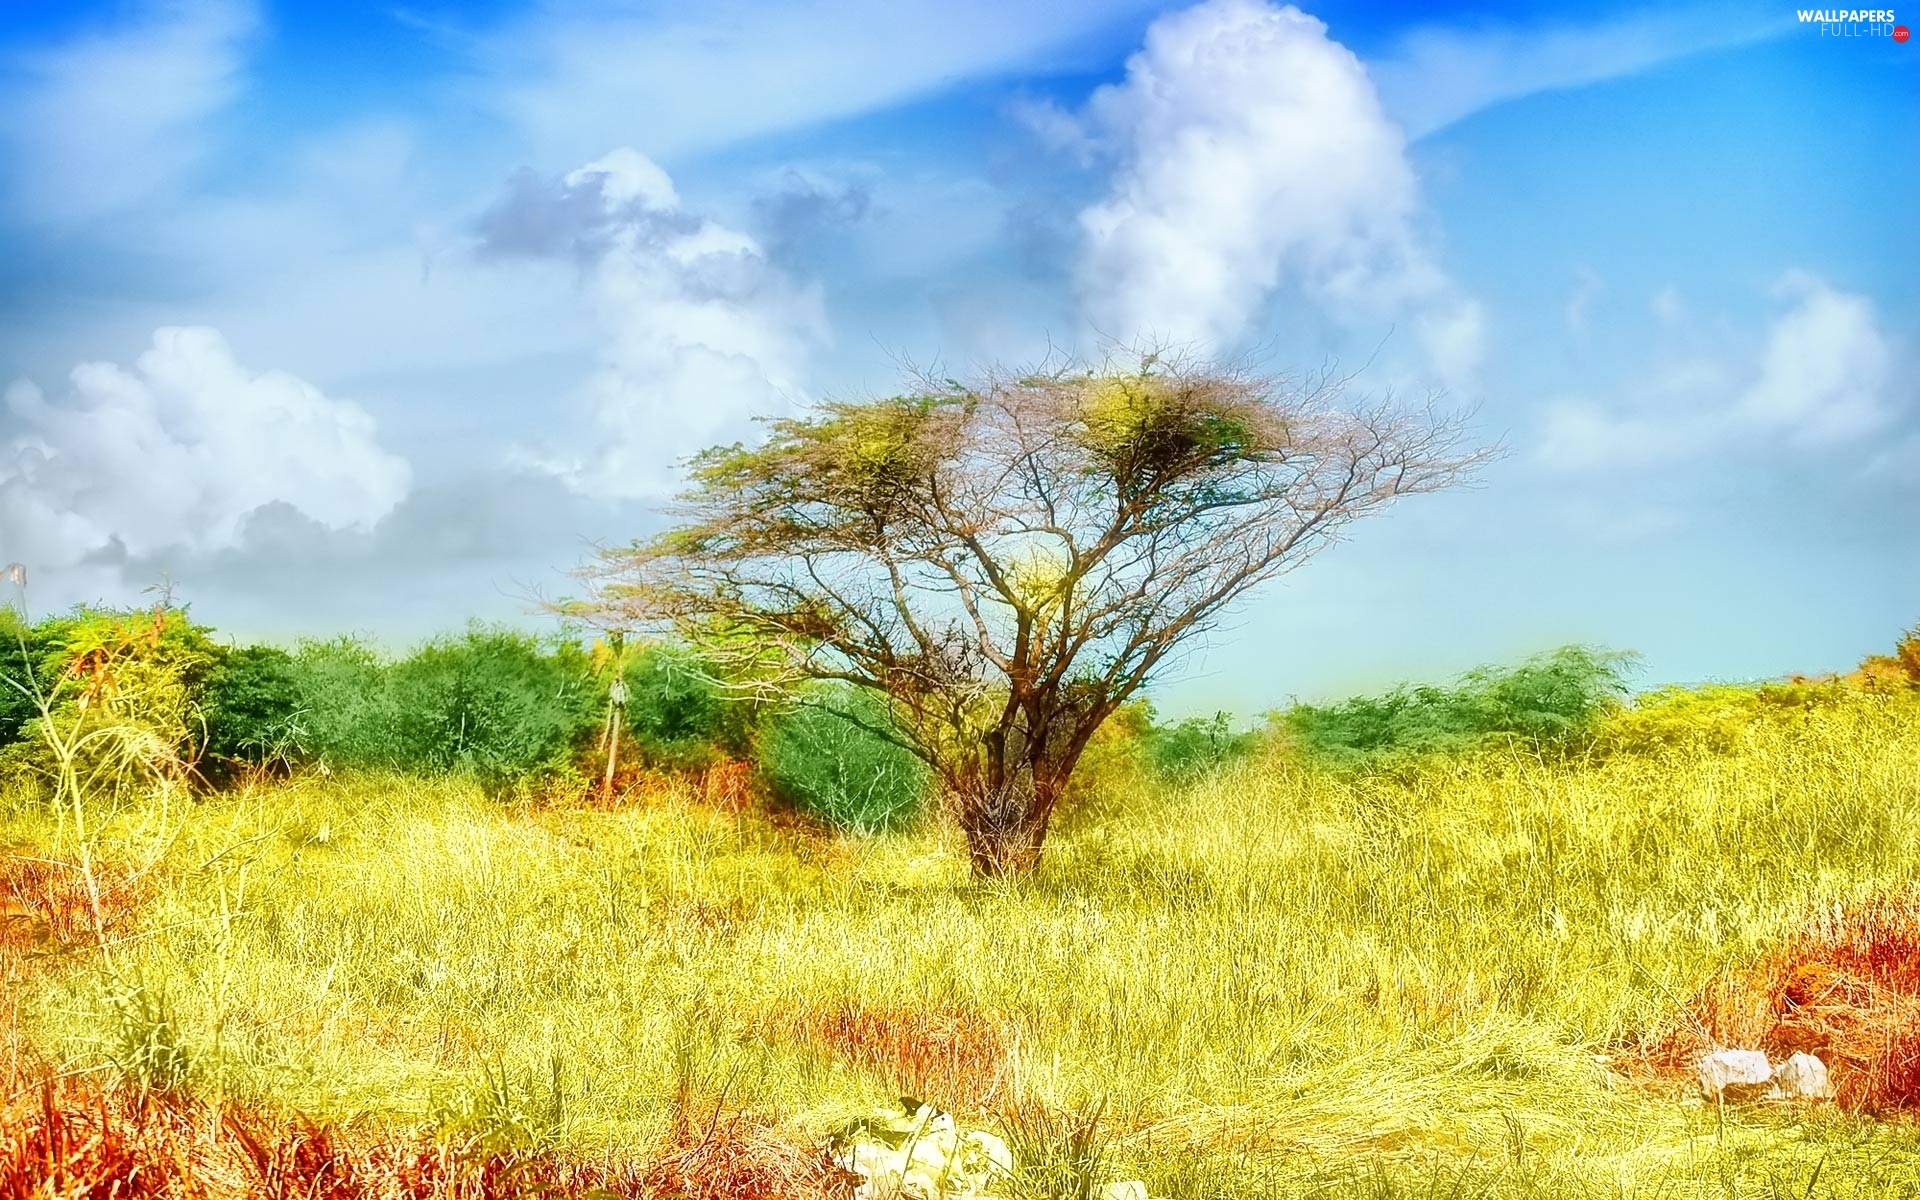 trees, grass, clouds, color